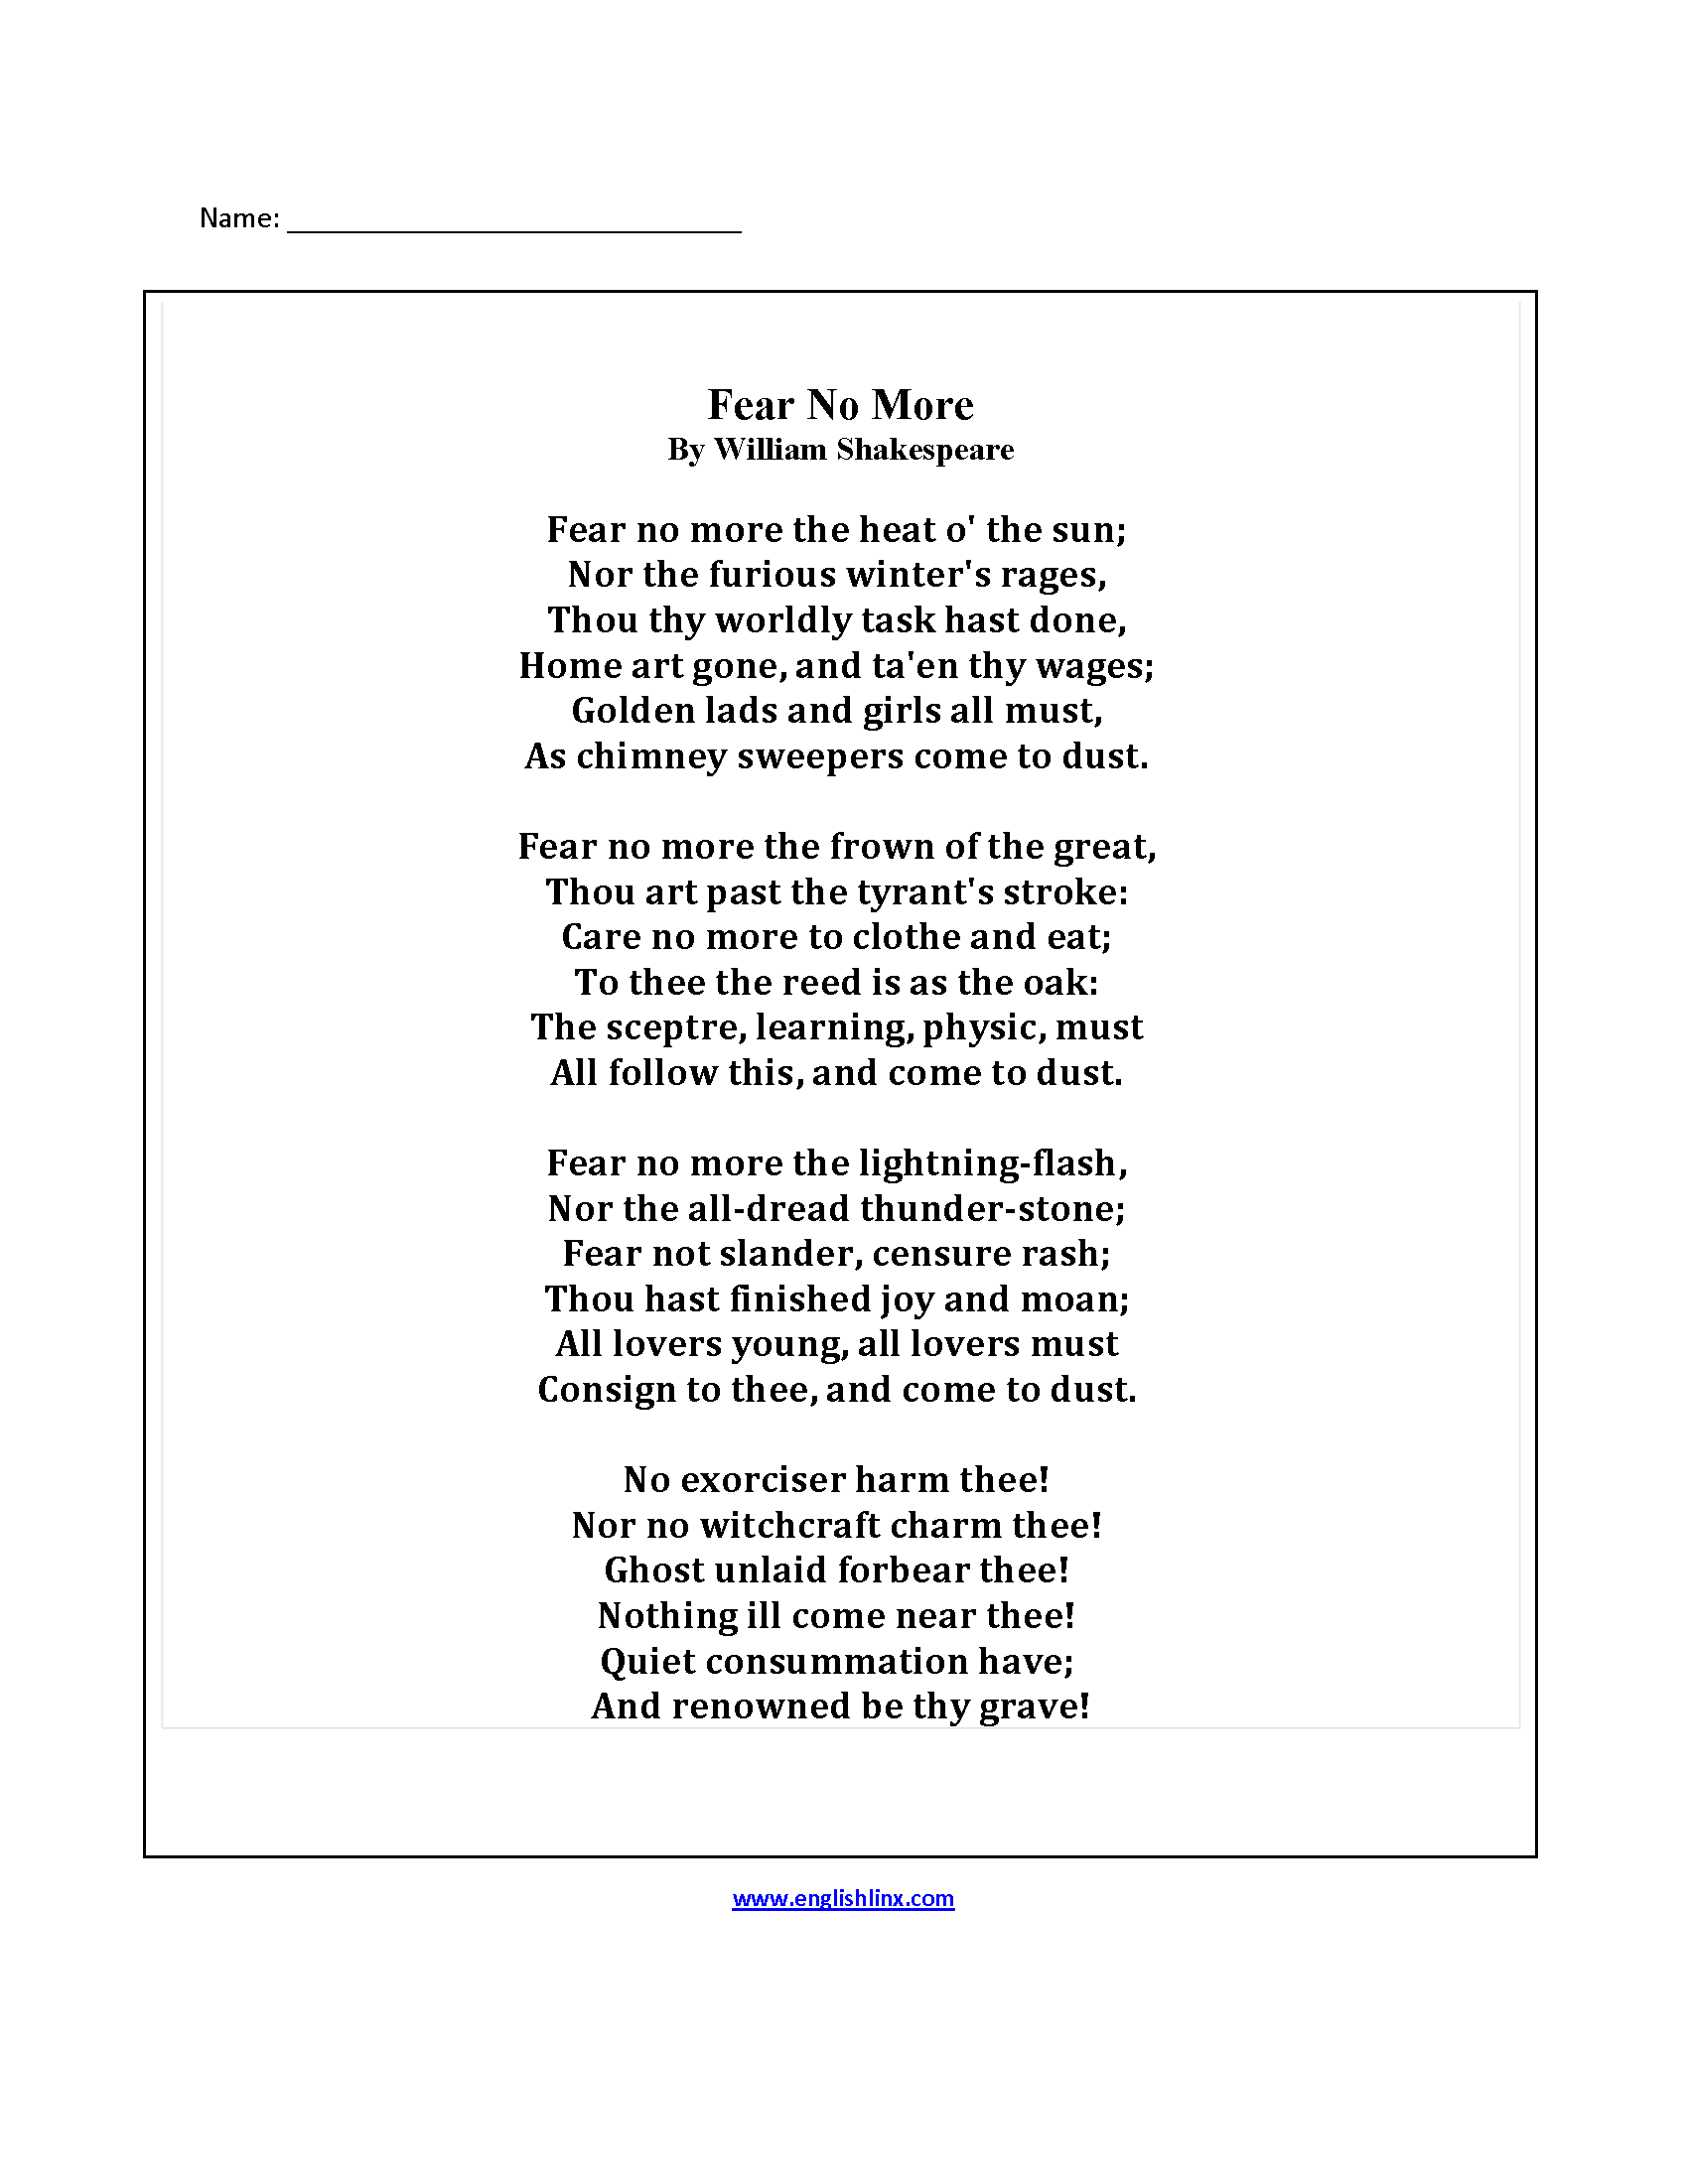 Poetry Worksheets | Fear No More Poetry Worksheets